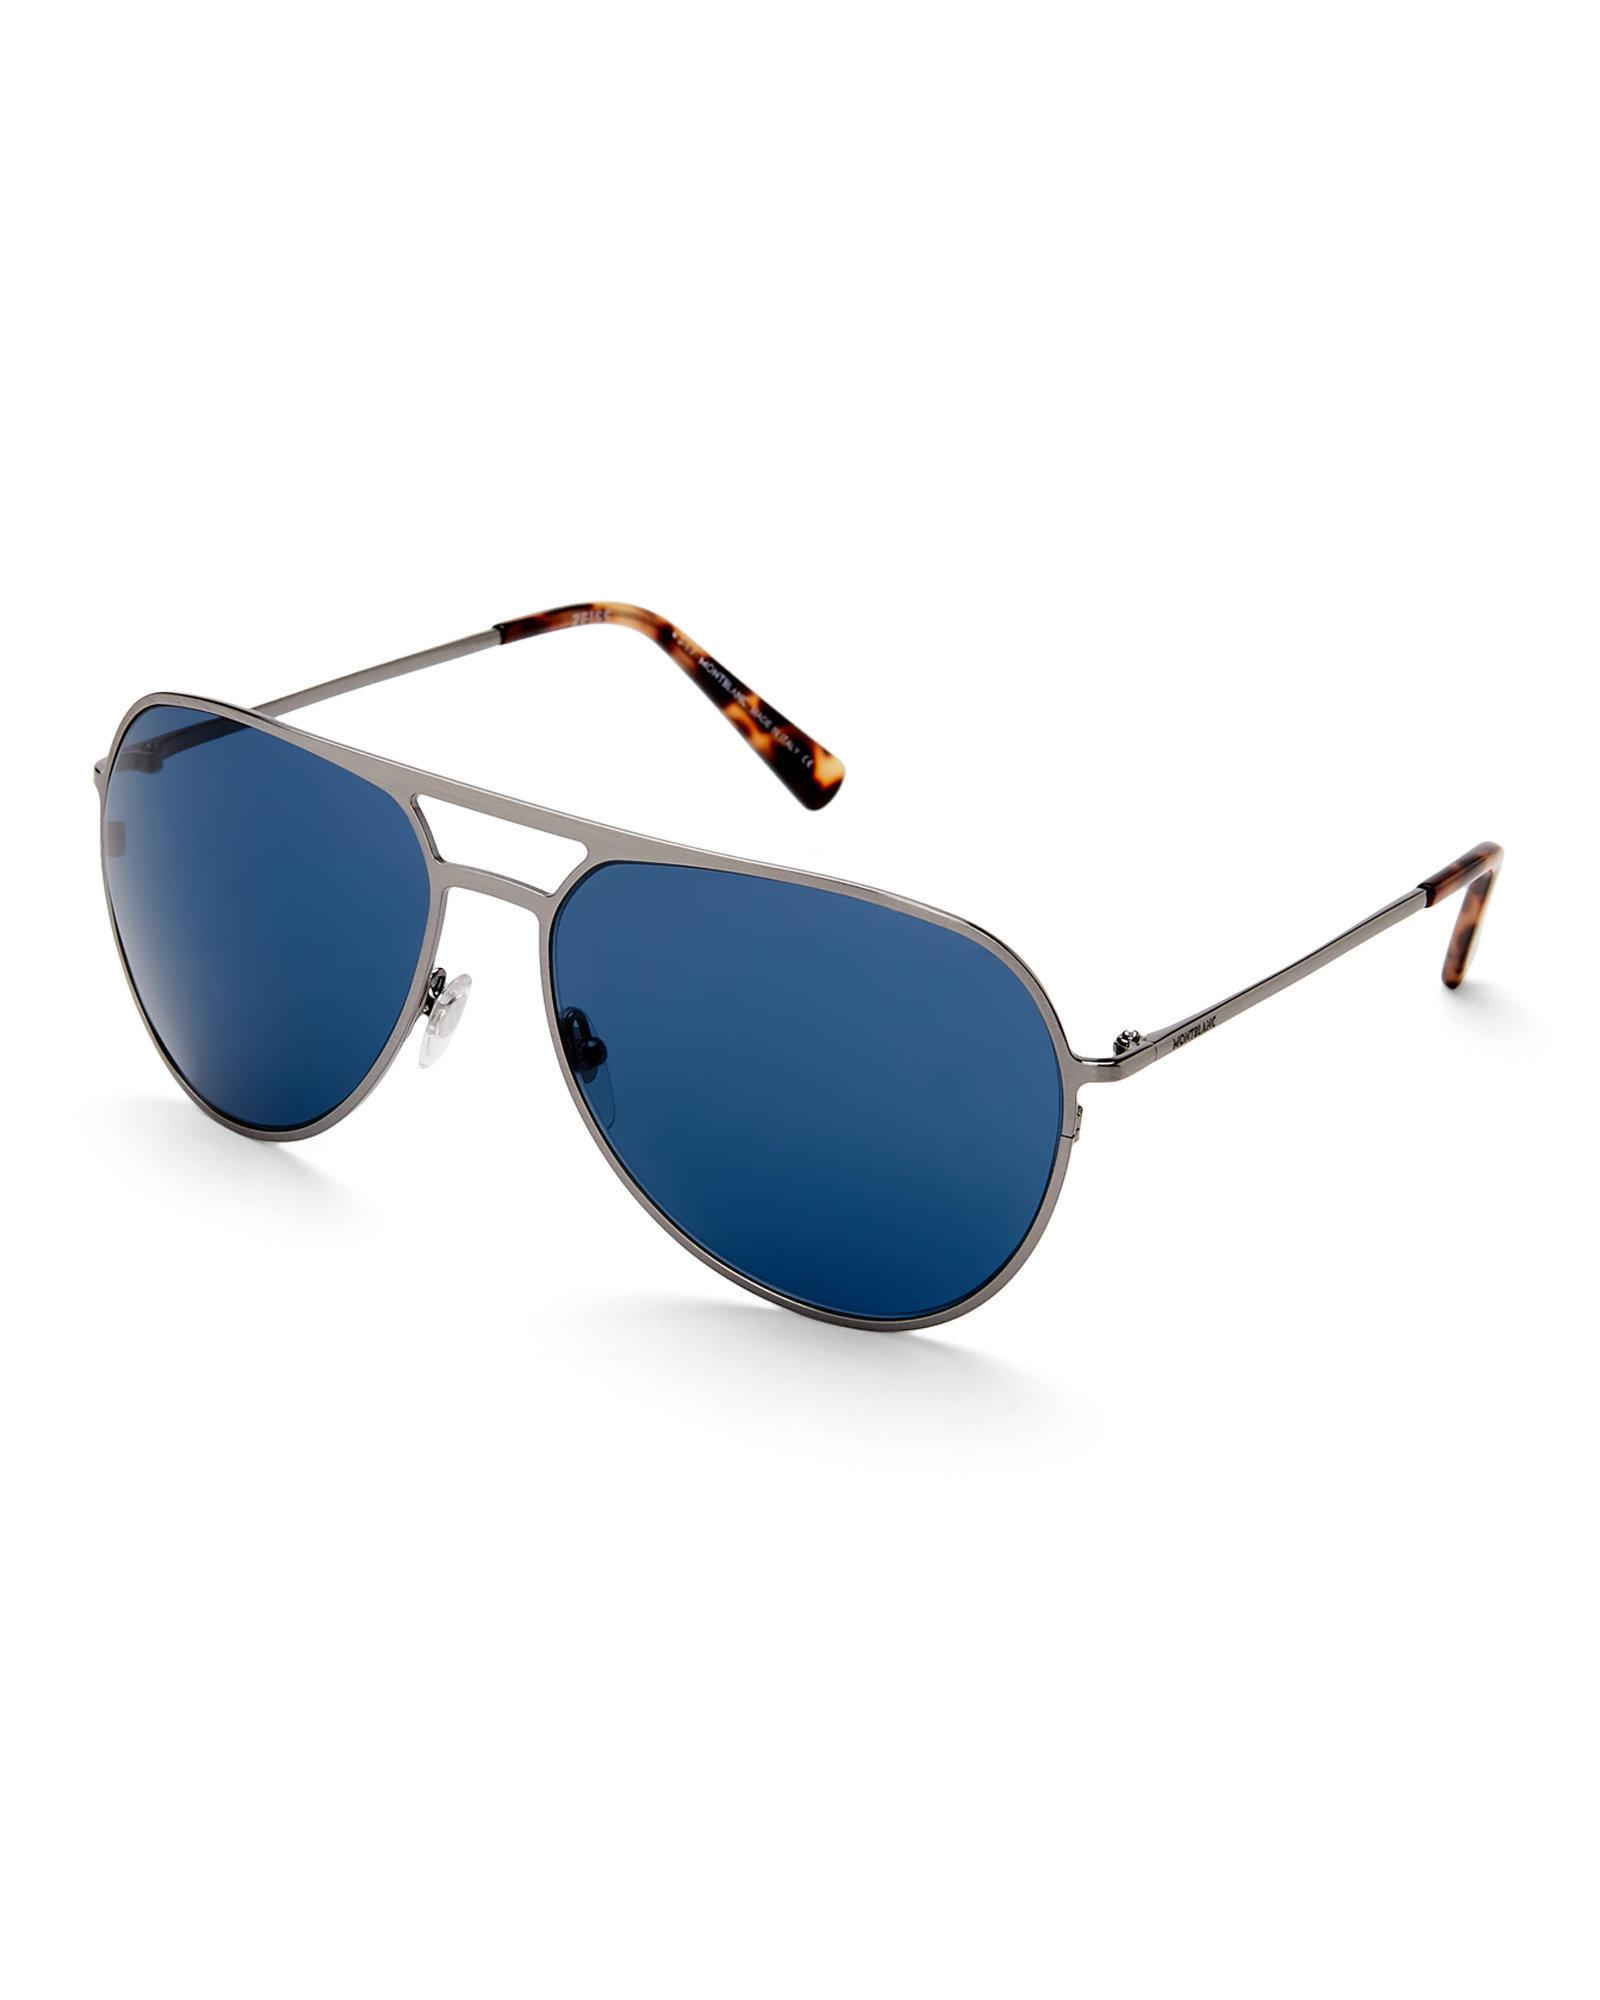 8eea535ae28 Lyst - Montblanc Mb 546S Silver-Tone Xl Aviator Sunglasses in Blue ...